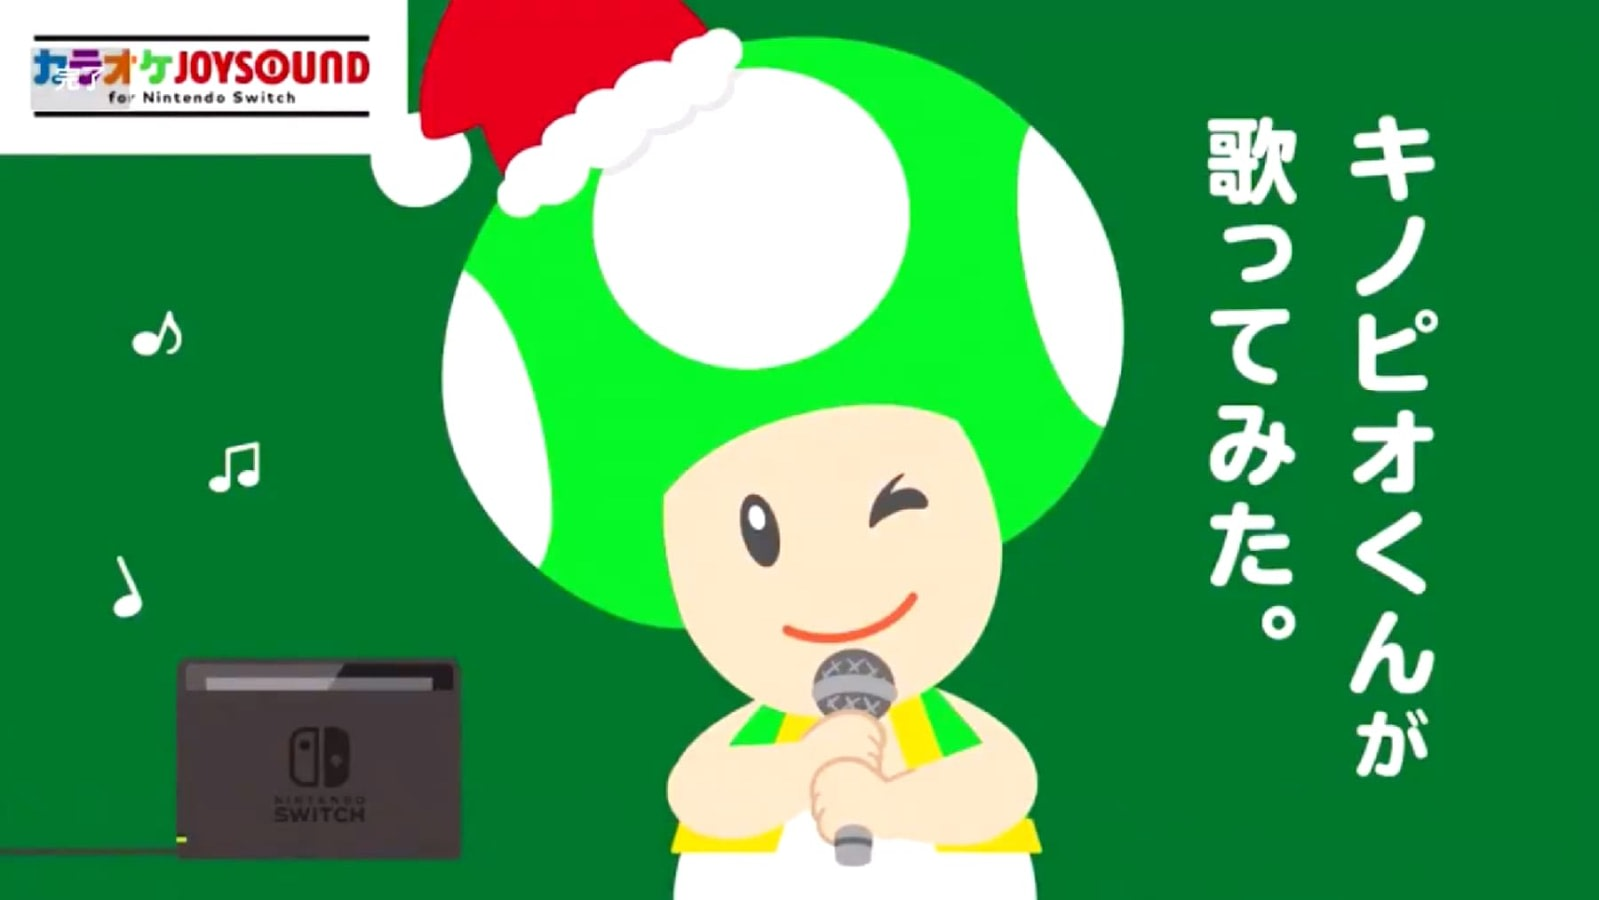 Nintendo Christmas.Nintendo Sends Toad To Ruin Your Christmas With A Terrible Carol